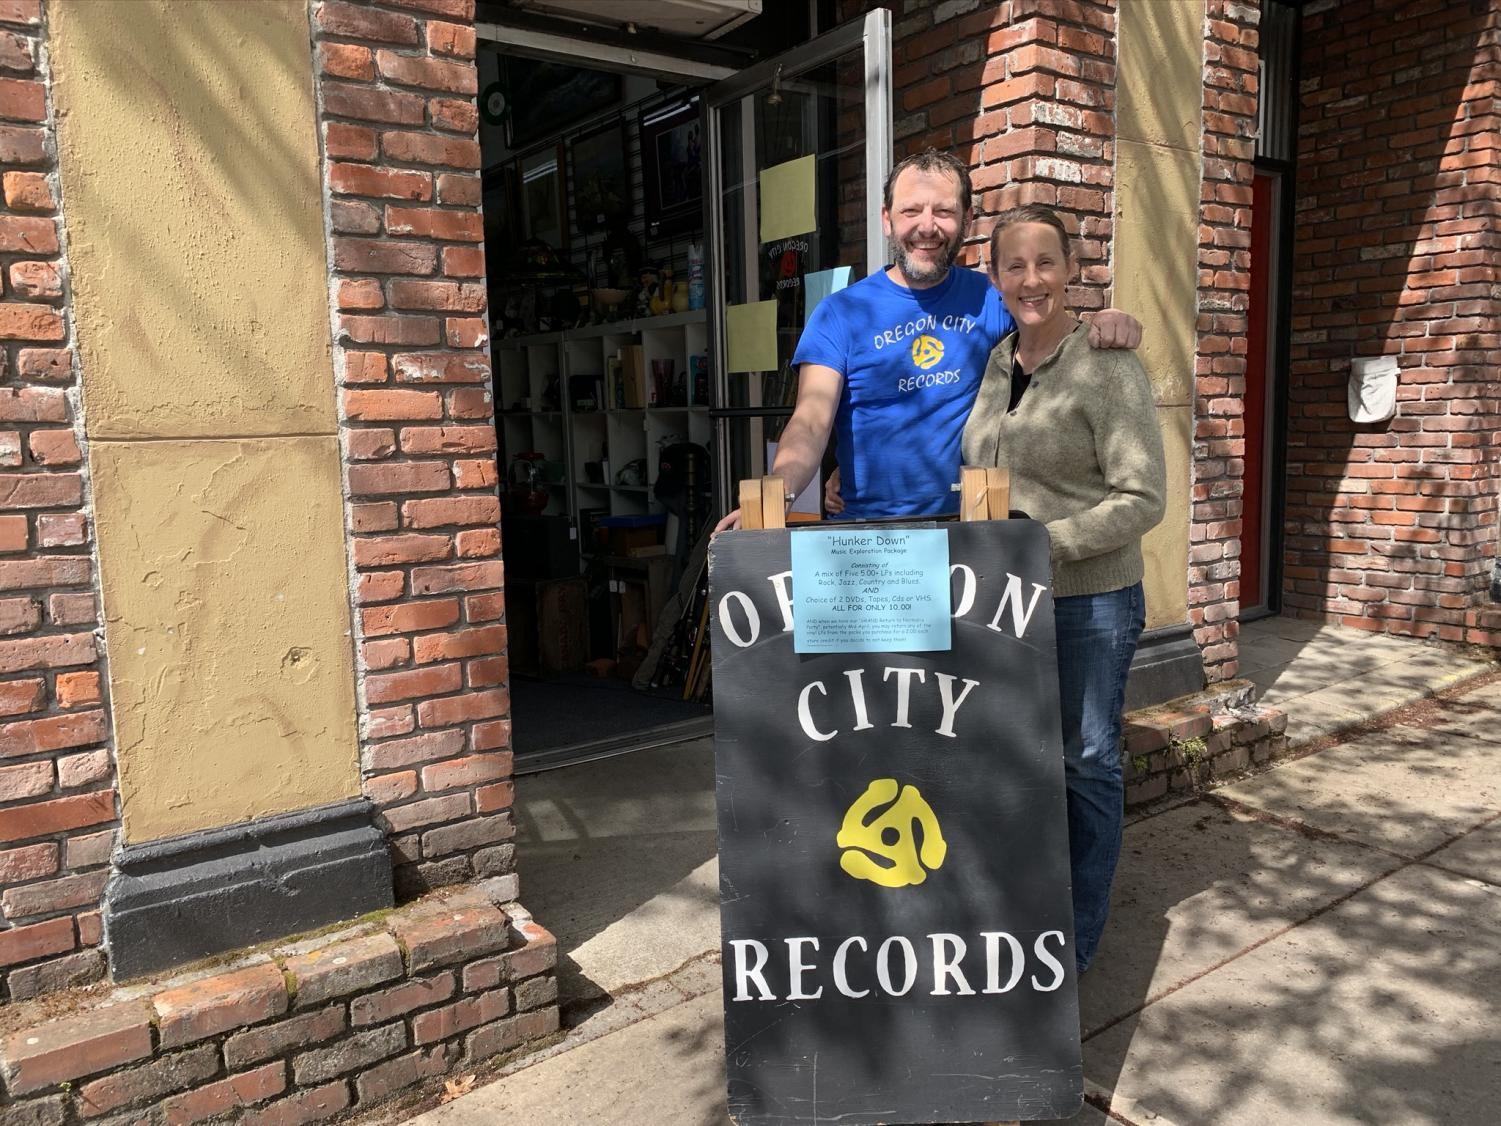 Owners of Oregon City Records Tory and Jessica Economou stand in front of their business.